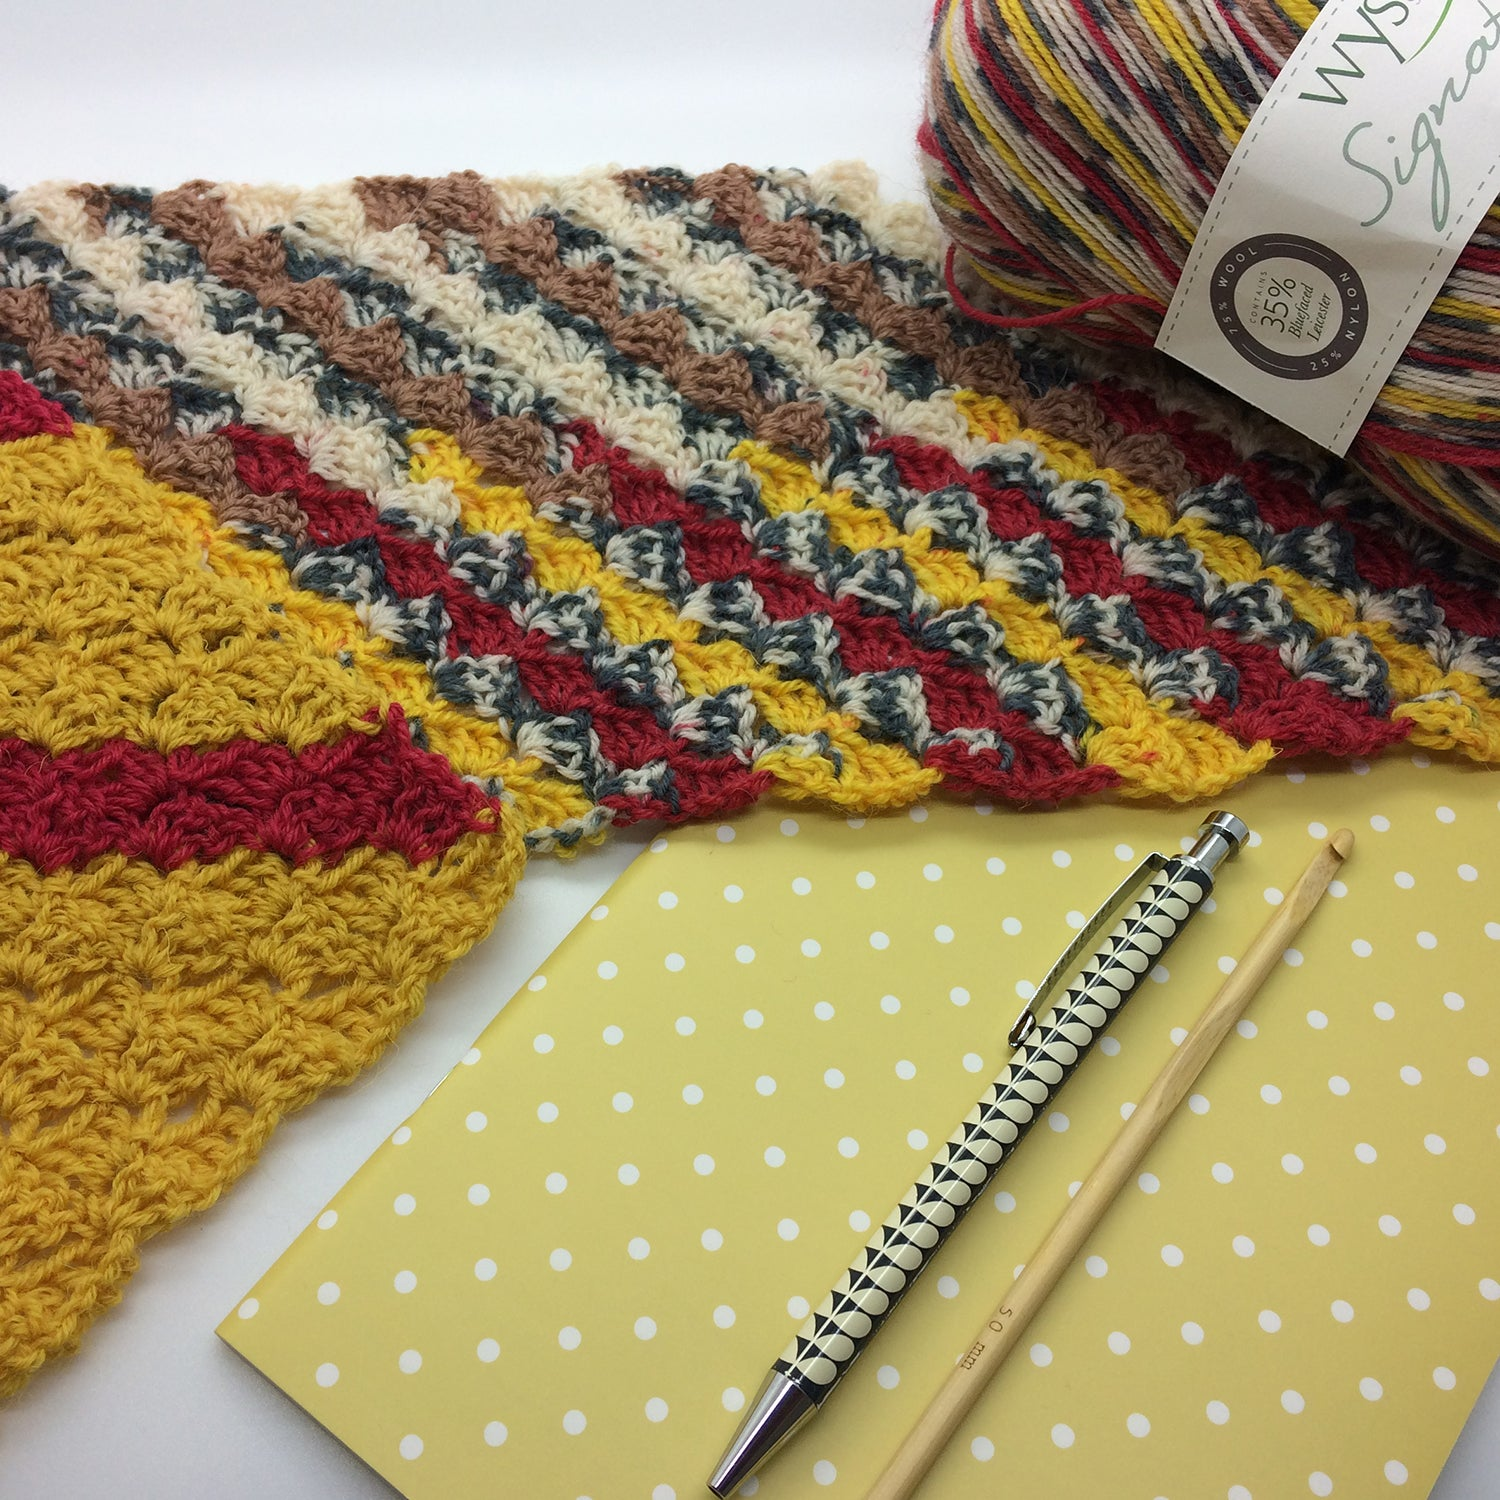 Mindful Knitting and Crochet